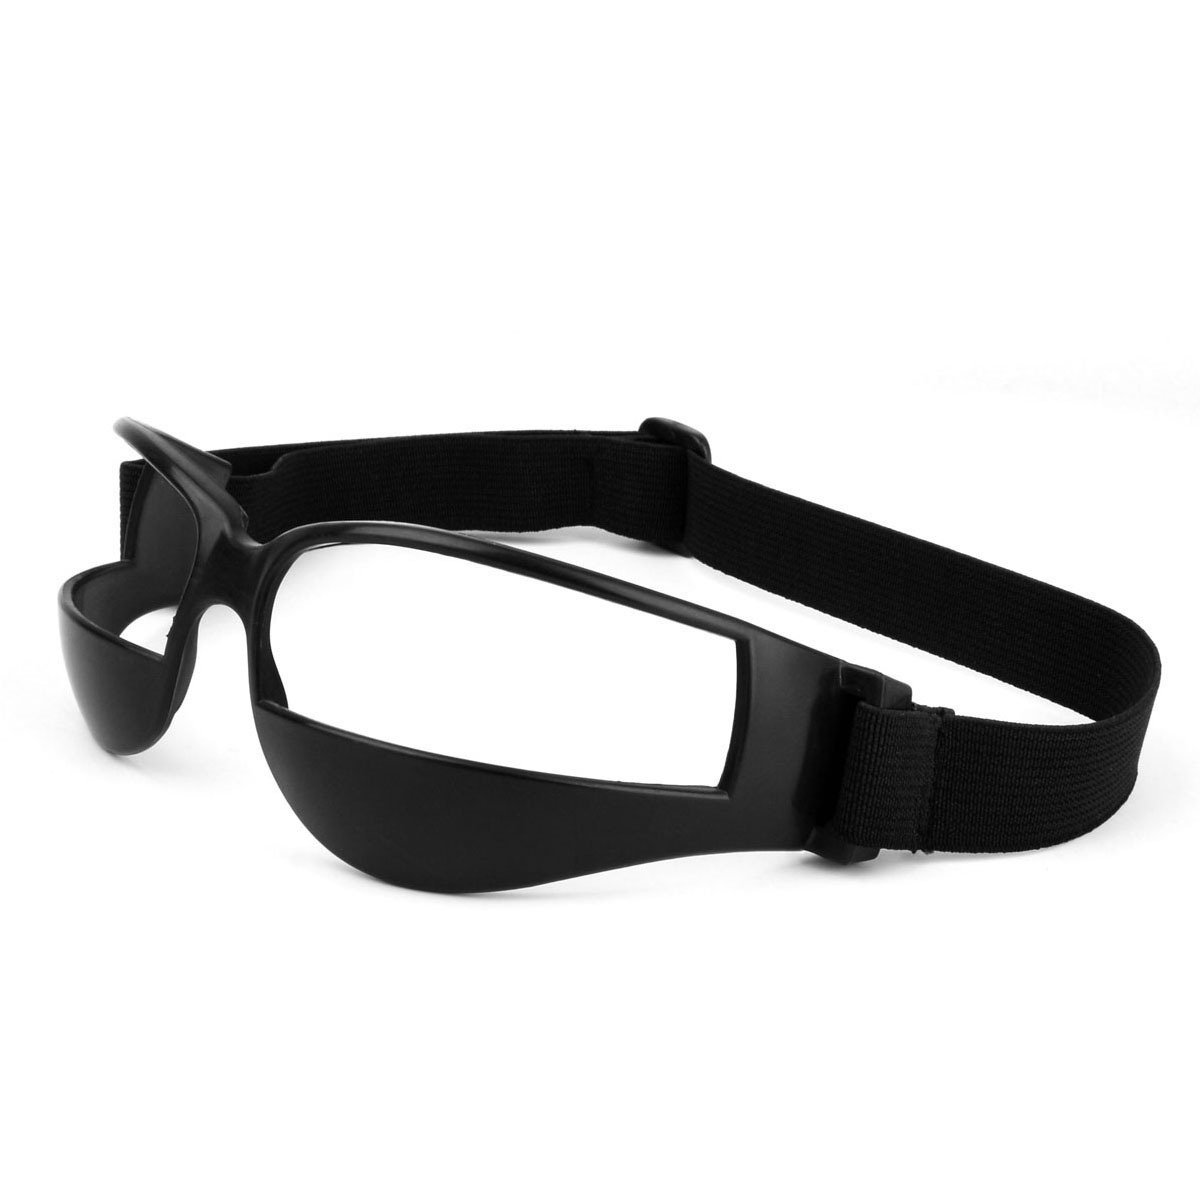 SHEEN KELLY Unique Sports Goggles Dribble Specs Basketball Training Aid Safety Goggles for Men with Adjustable Strap for Basketball Black by SHEEN KELLY